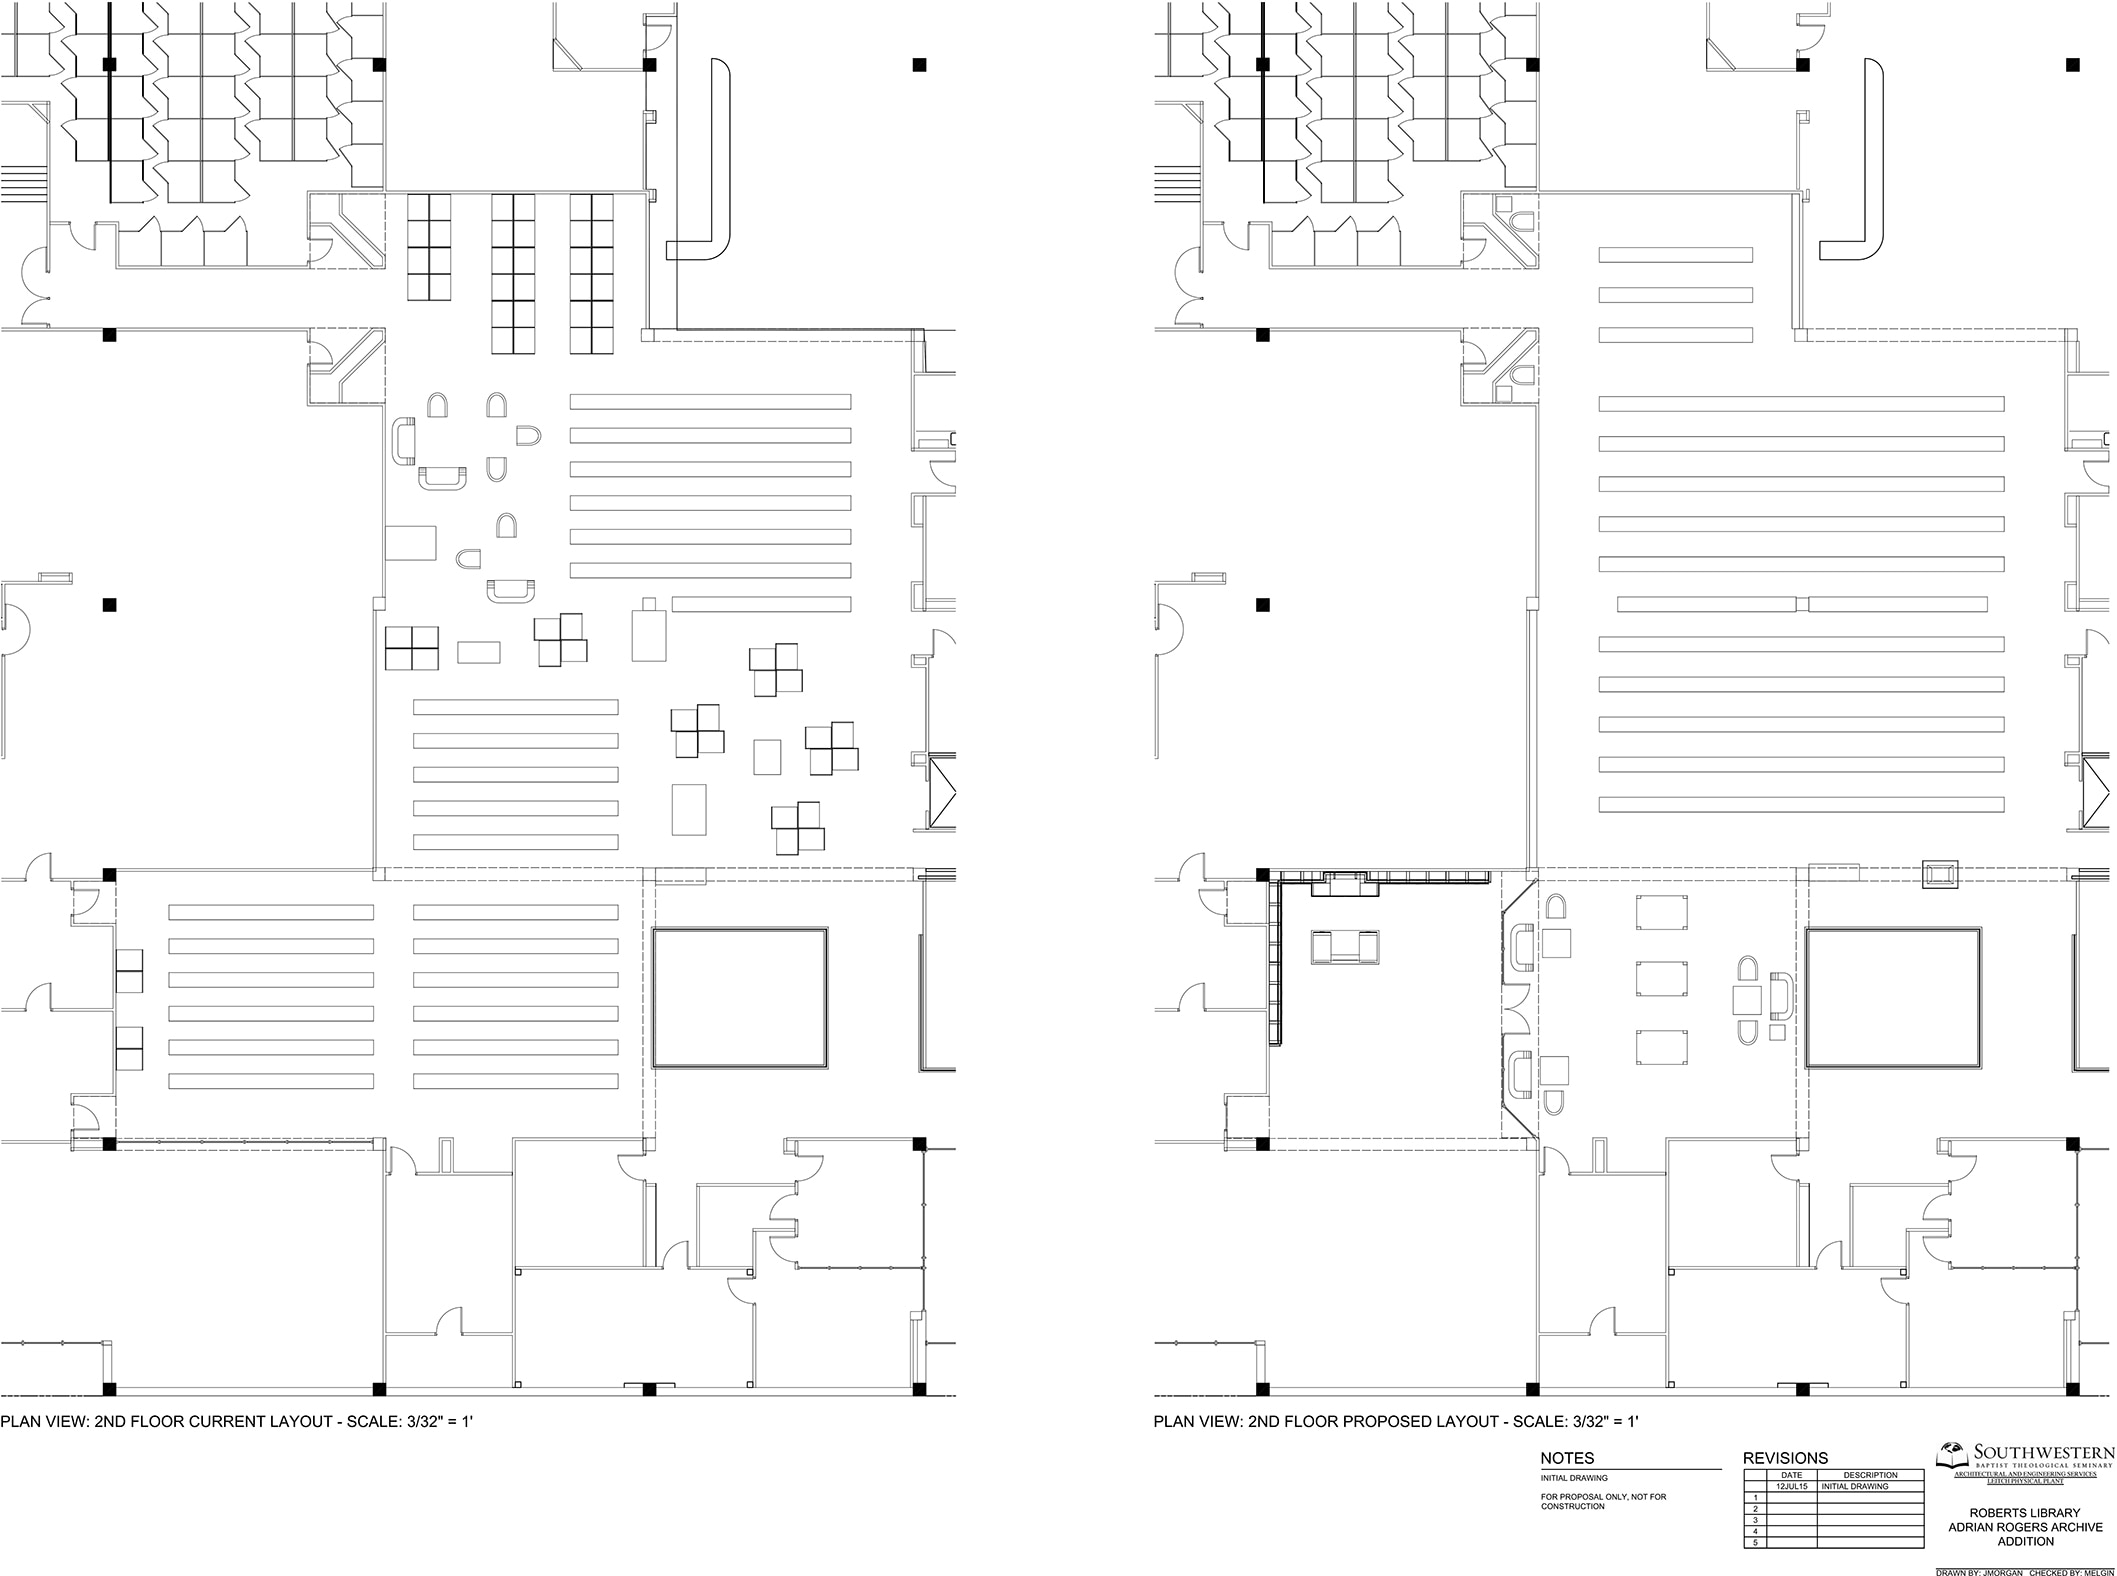 Remaking A Library With Autocad Mobile Hvac Cad Drawing Drawings Of Proposed Extension